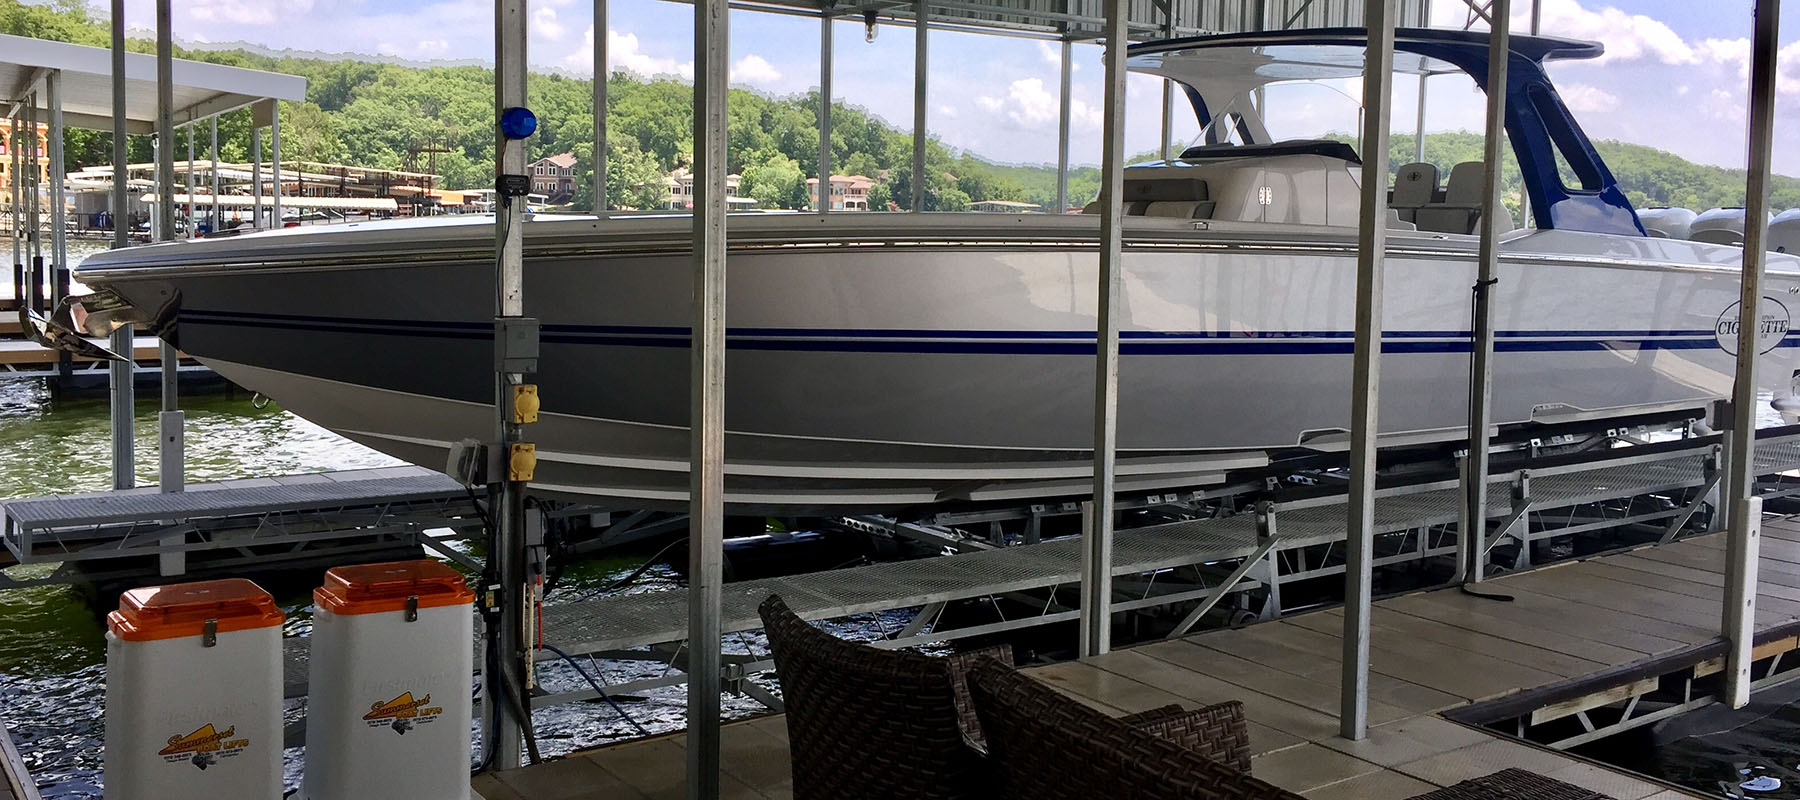 24,000 lb boat lift at the Lake of the Ozarks